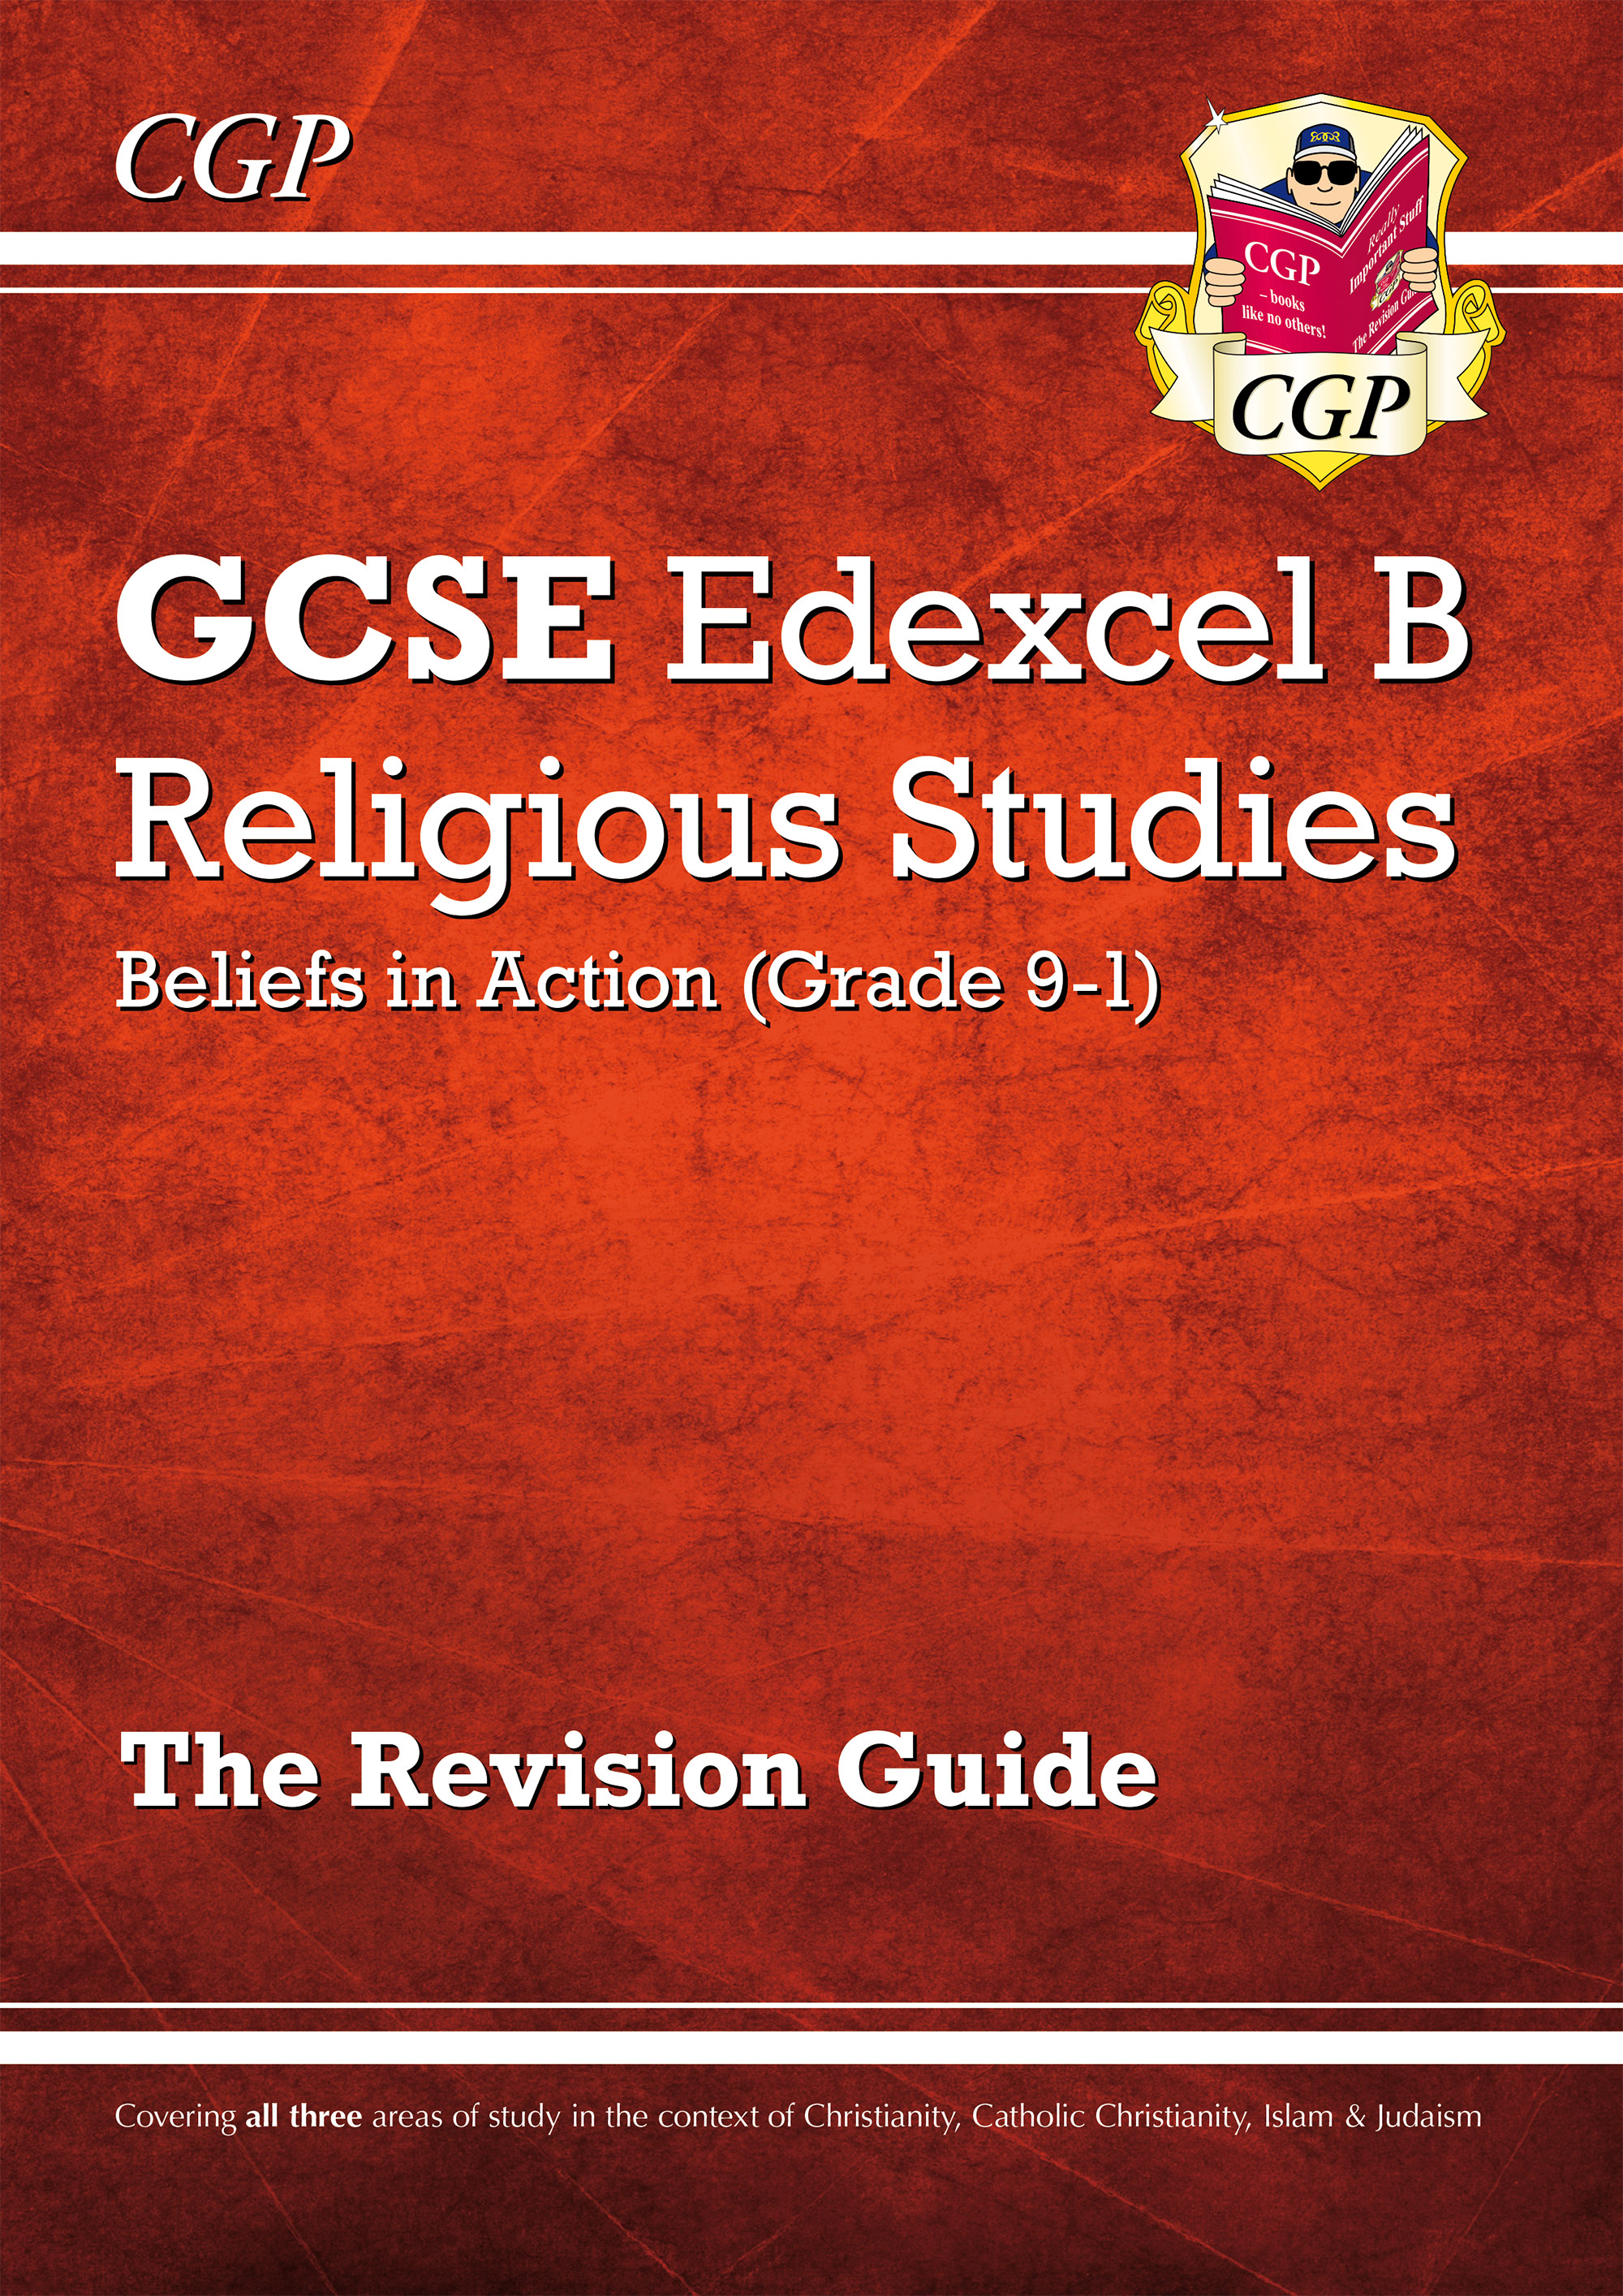 RER41DK - New Grade 9-1 GCSE Religious Studies: Edexcel B Beliefs in Action Revision Guide